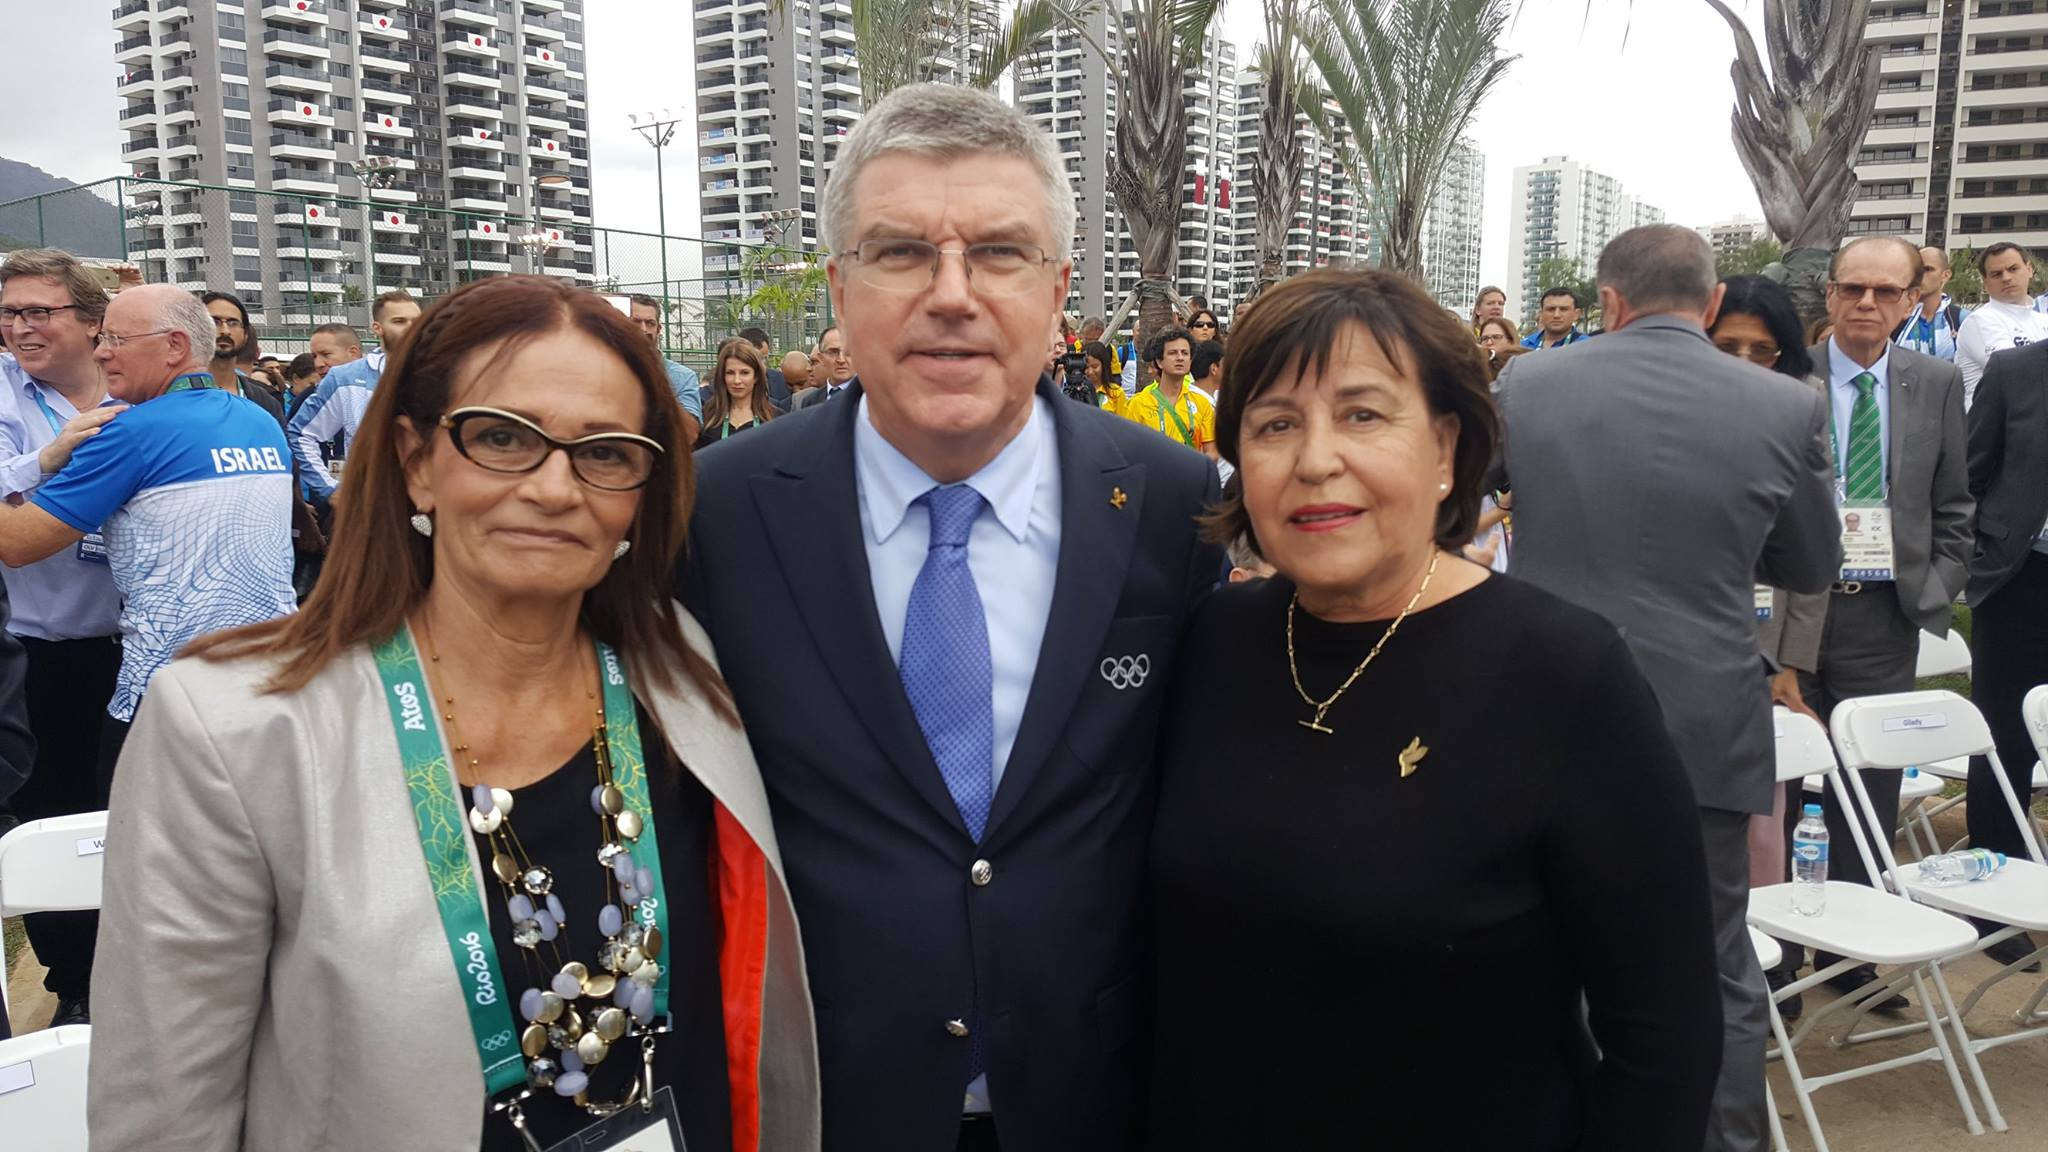 International Olympic Committee President Thomas Bach poses with Ankie Spitzer and Ilana Romano, widows of two of the 11 Israelis murdered at the 1972 Munich Olympics, at the first-ever IOC-led memorial ceremony in Rio de Janeiro. Photo via Israel Olympic Committee/Facebook